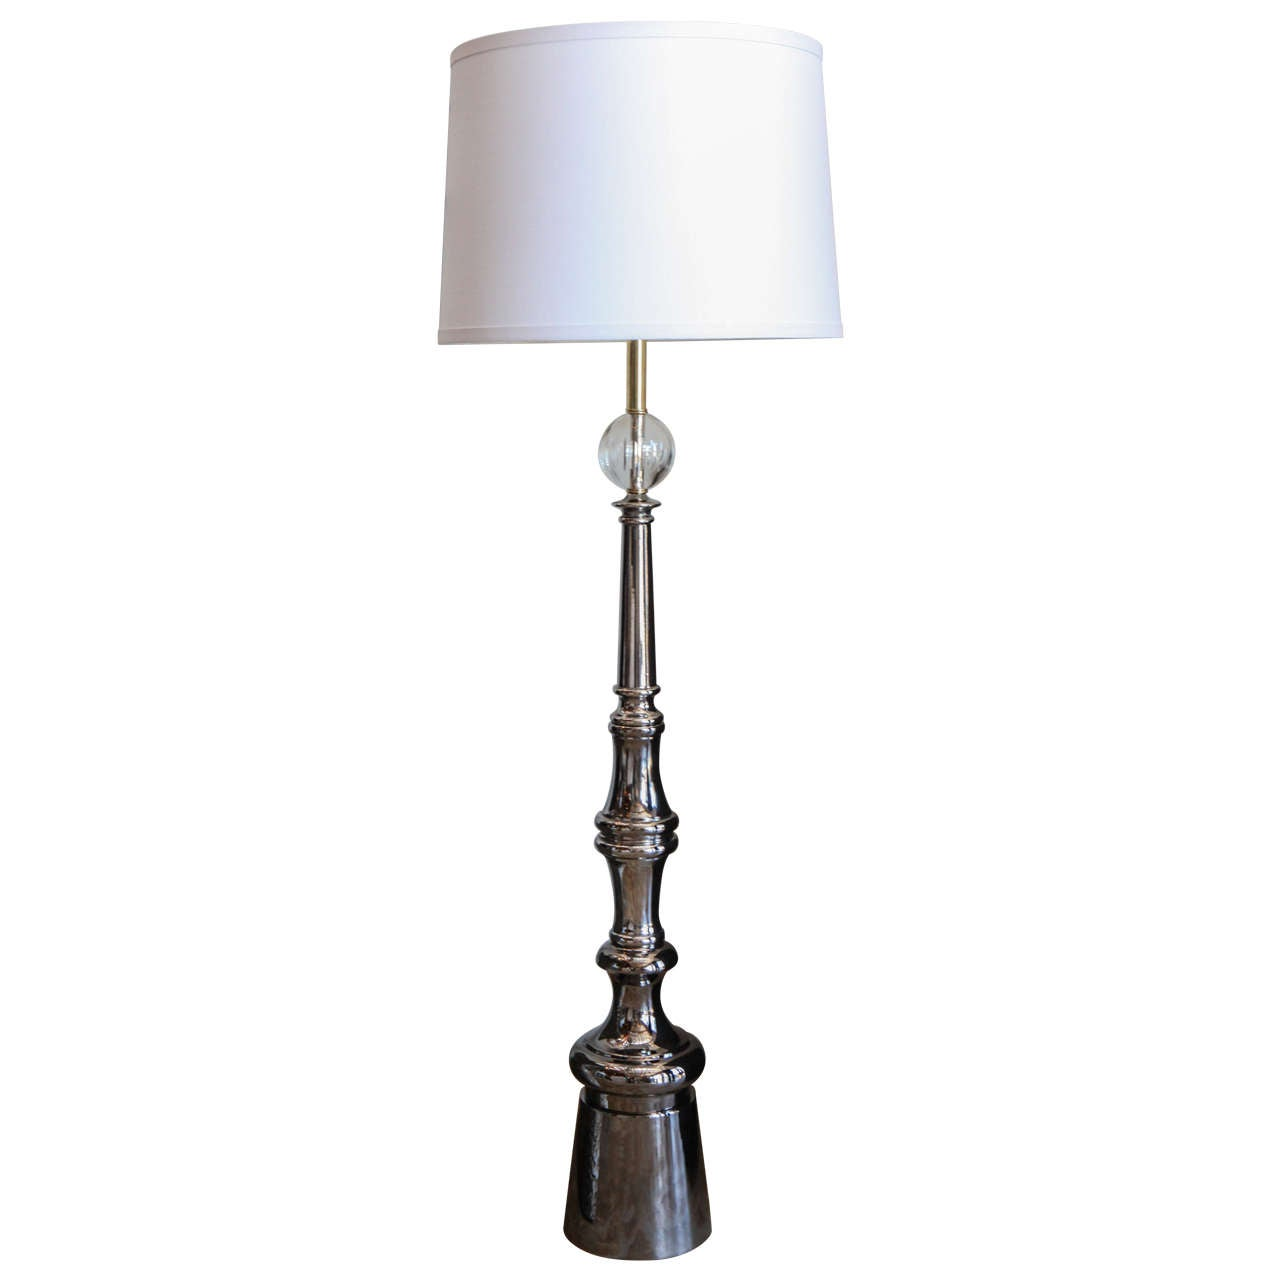 mid century modern black nickel and crystal floor lamps at 1stdibs. Black Bedroom Furniture Sets. Home Design Ideas